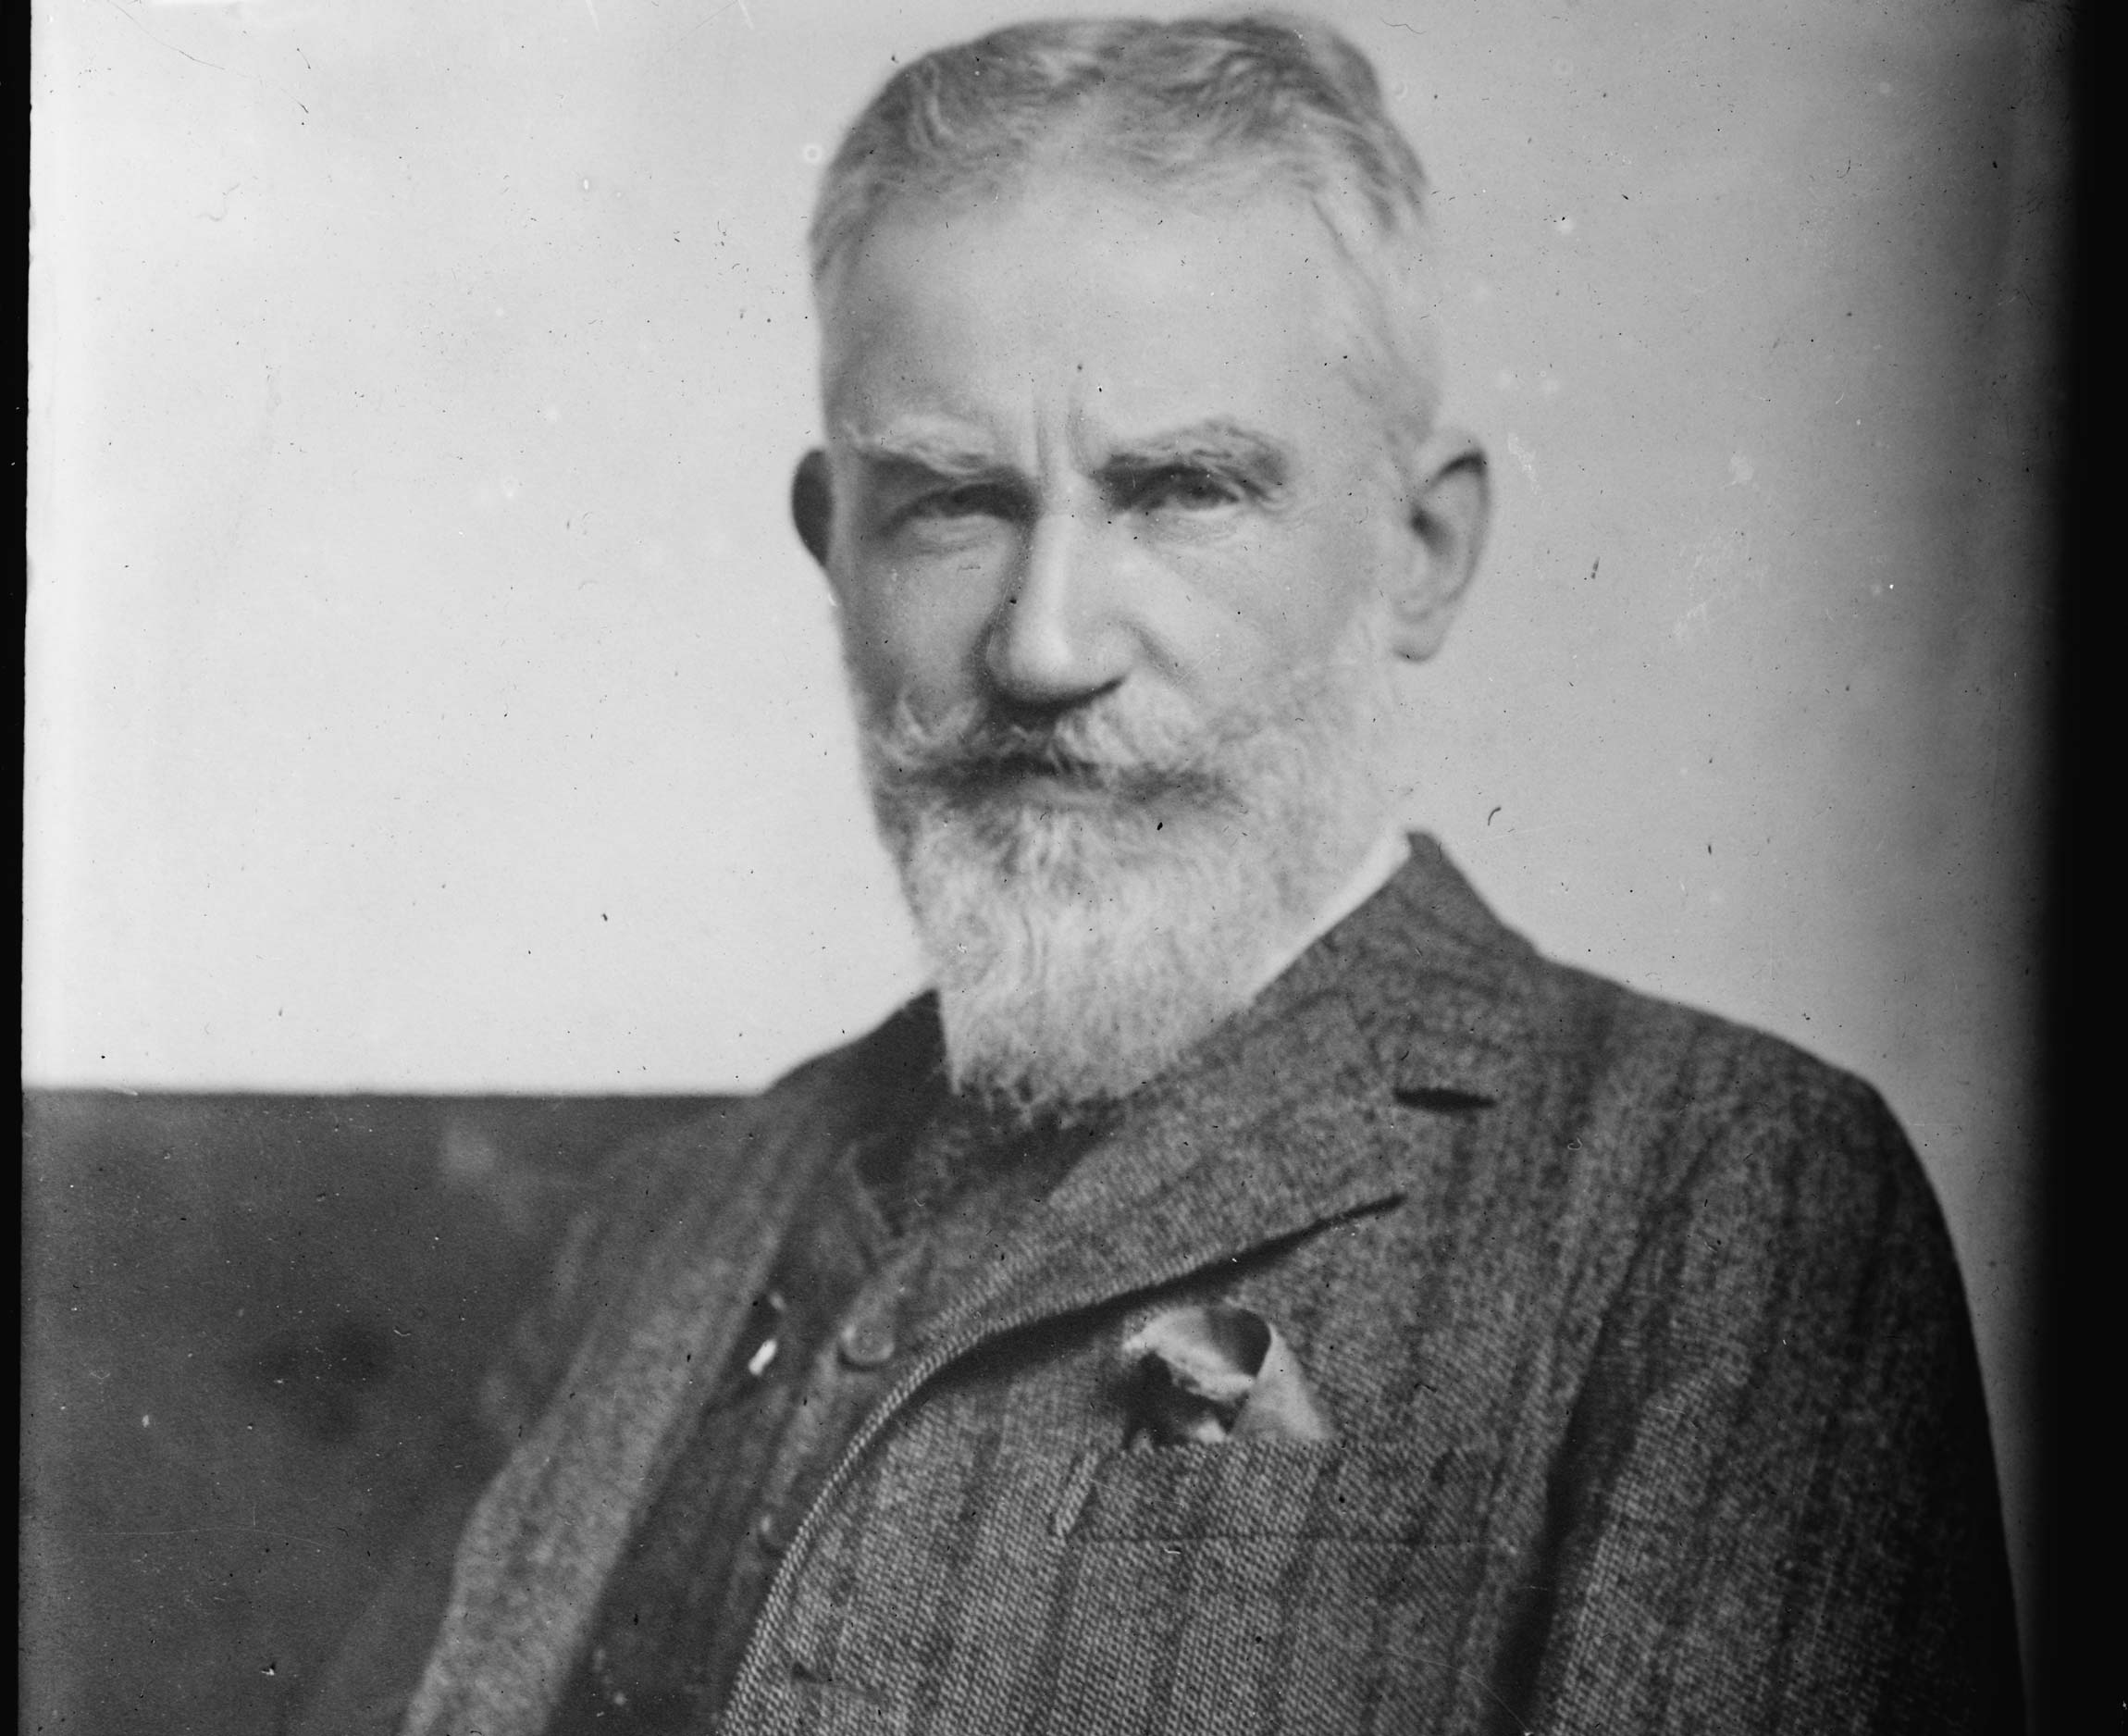 'Common Sense' and the War: George Bernard Shaw in 1914